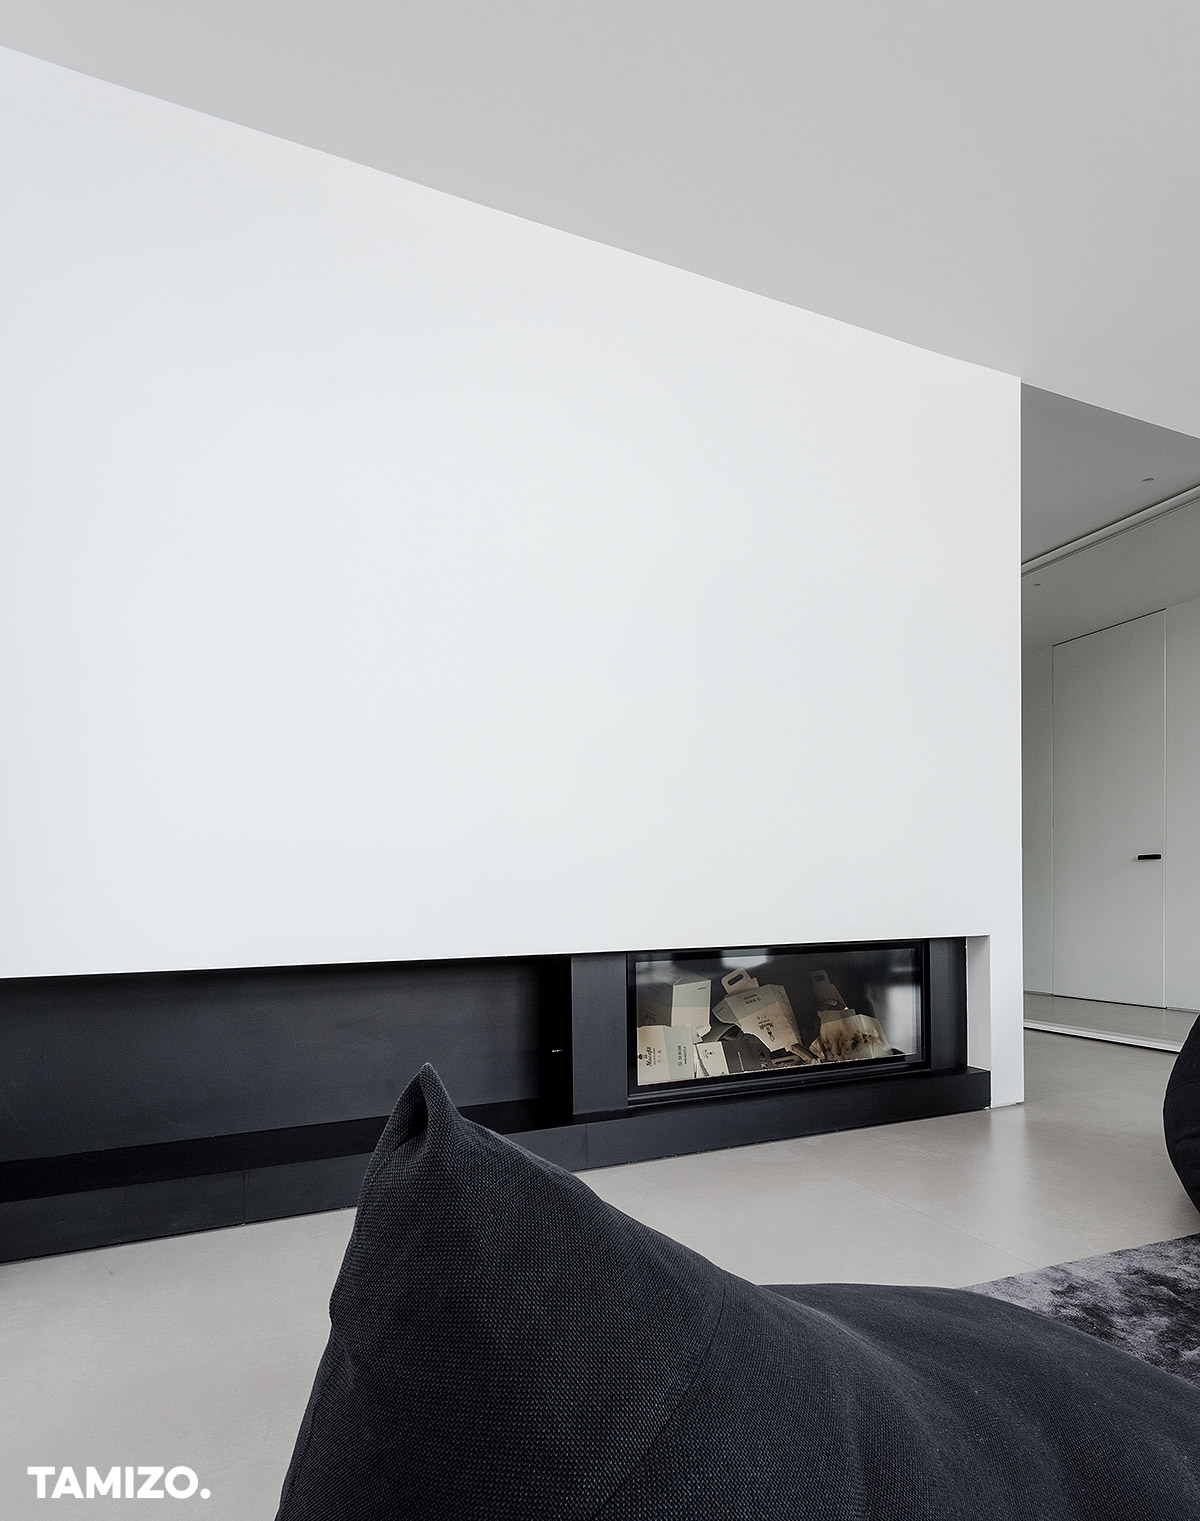 008_tamizo_architects_interior_house_realization_warsaw_poland_11